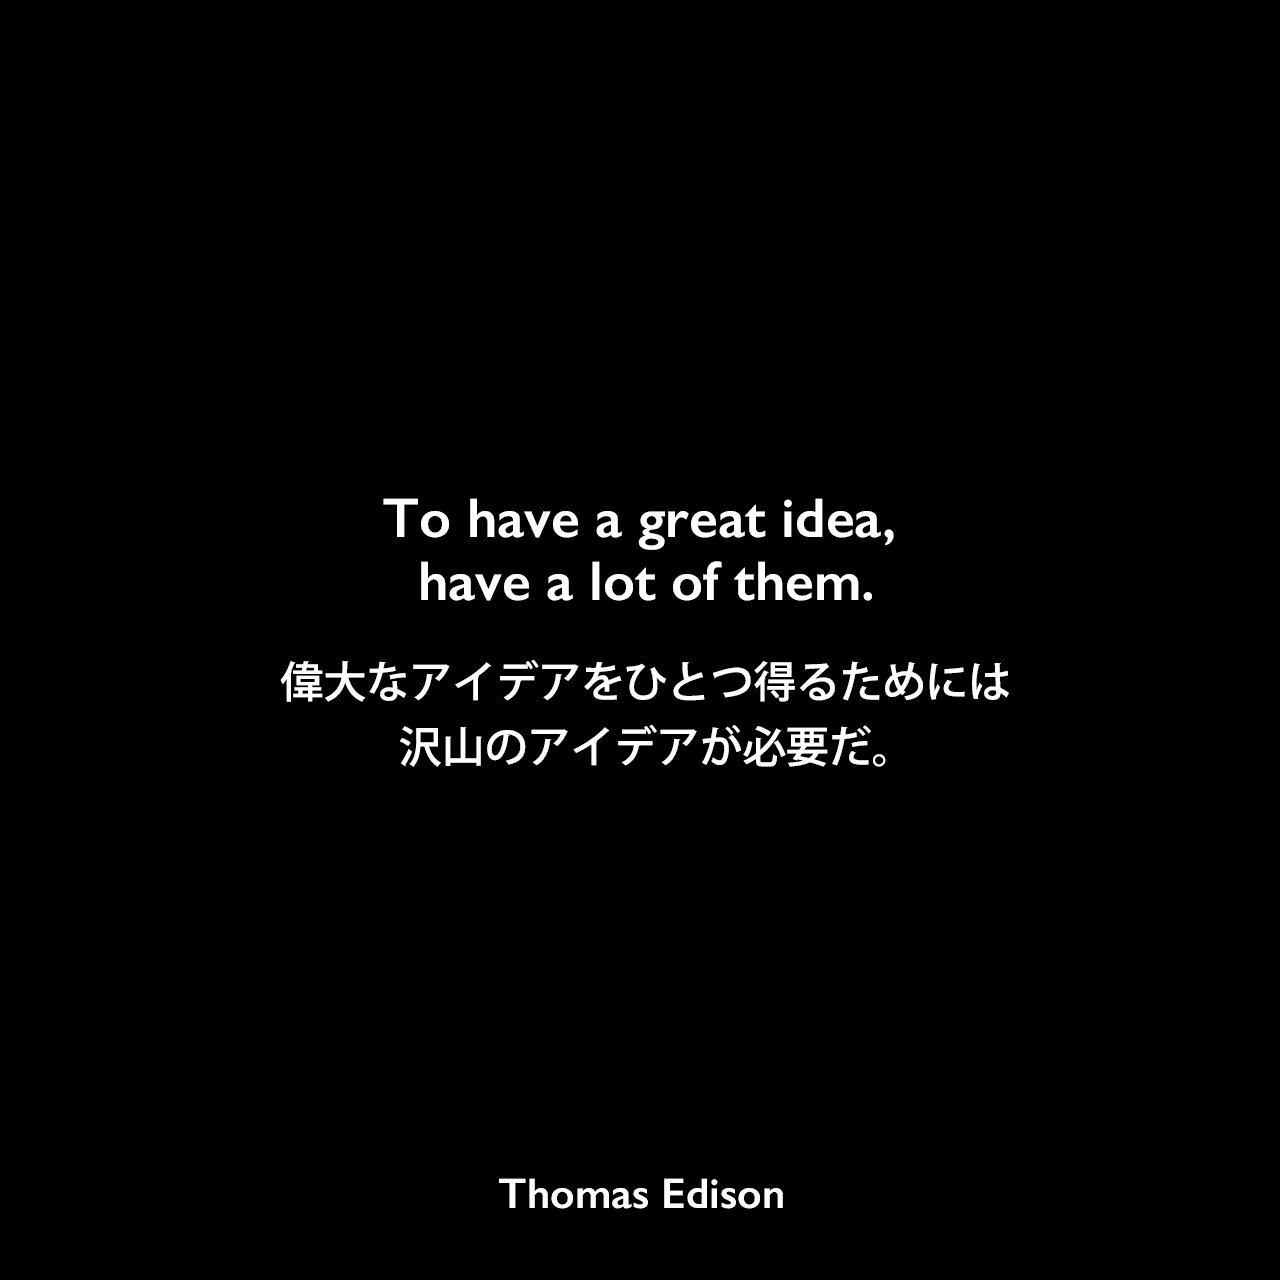 To have a great idea, have a lot of them.偉大なアイデアを得るためには、沢山のアイデアが必要だ。Thomas Edison